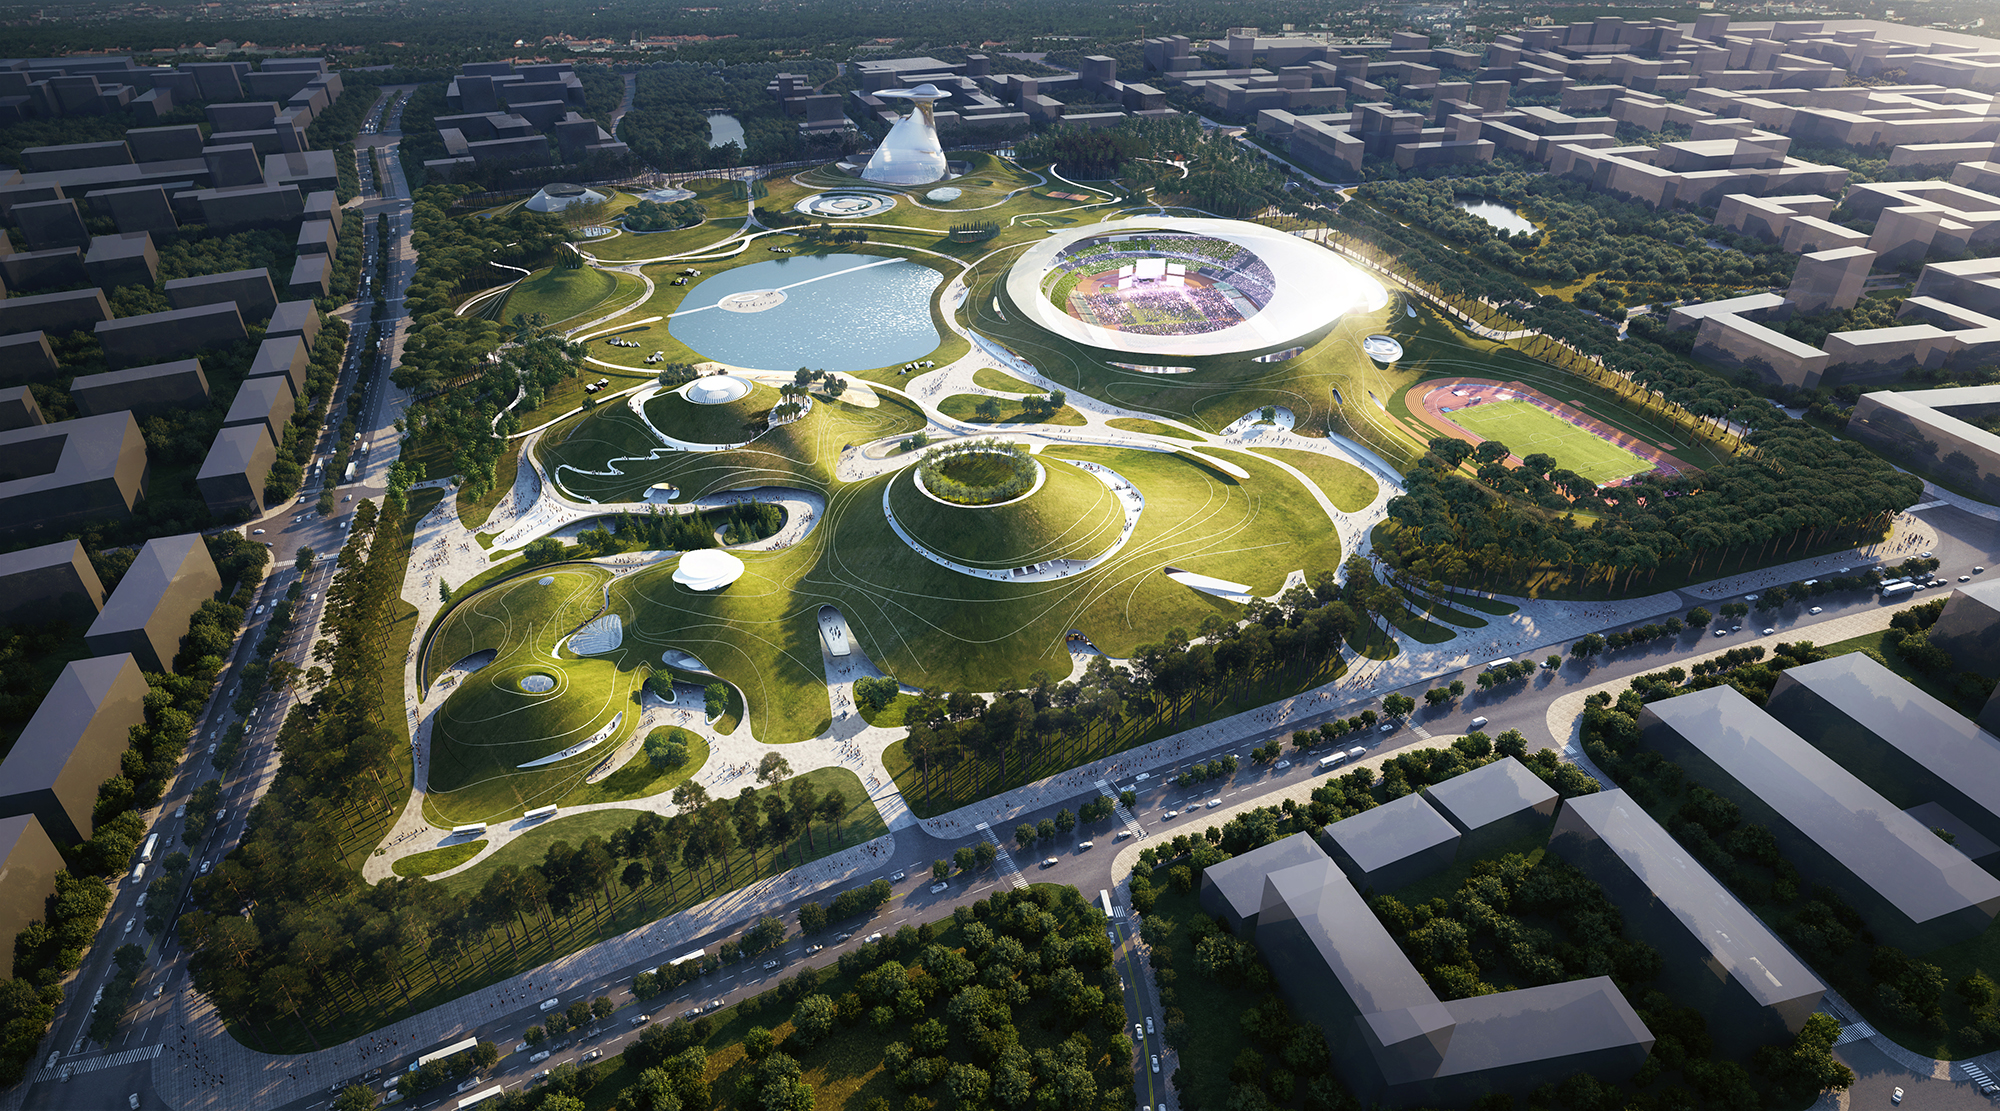 01_MAD_Quzhou Sports Campus